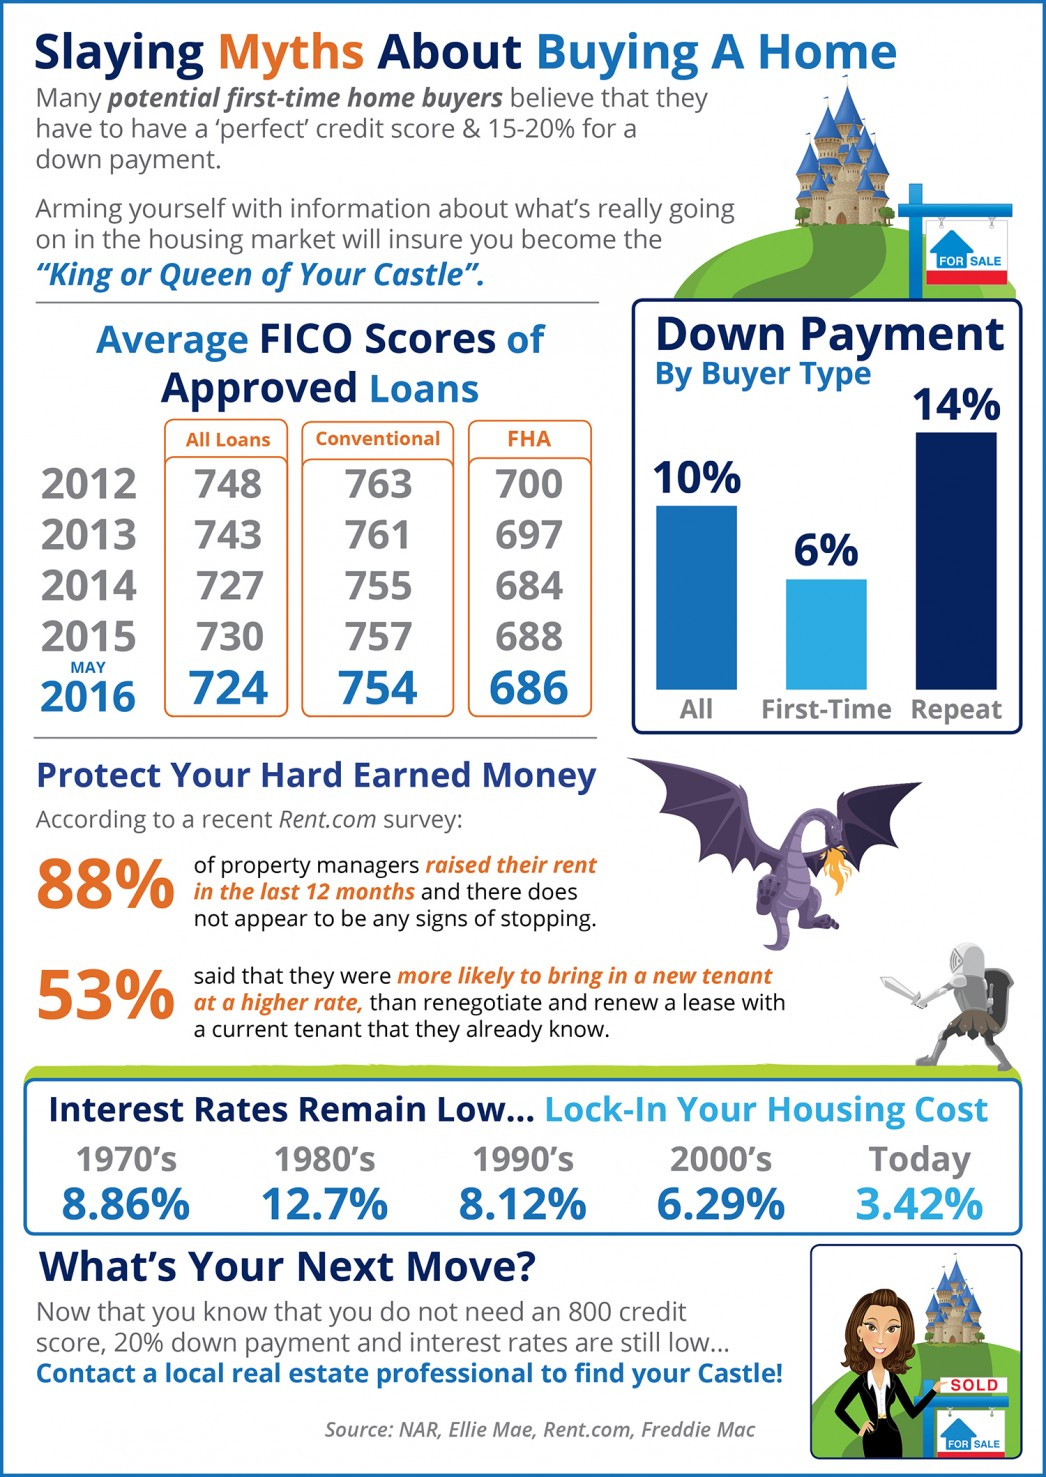 Slaying Myths About Home Buying [INFOGRAPHIC] | My KCM